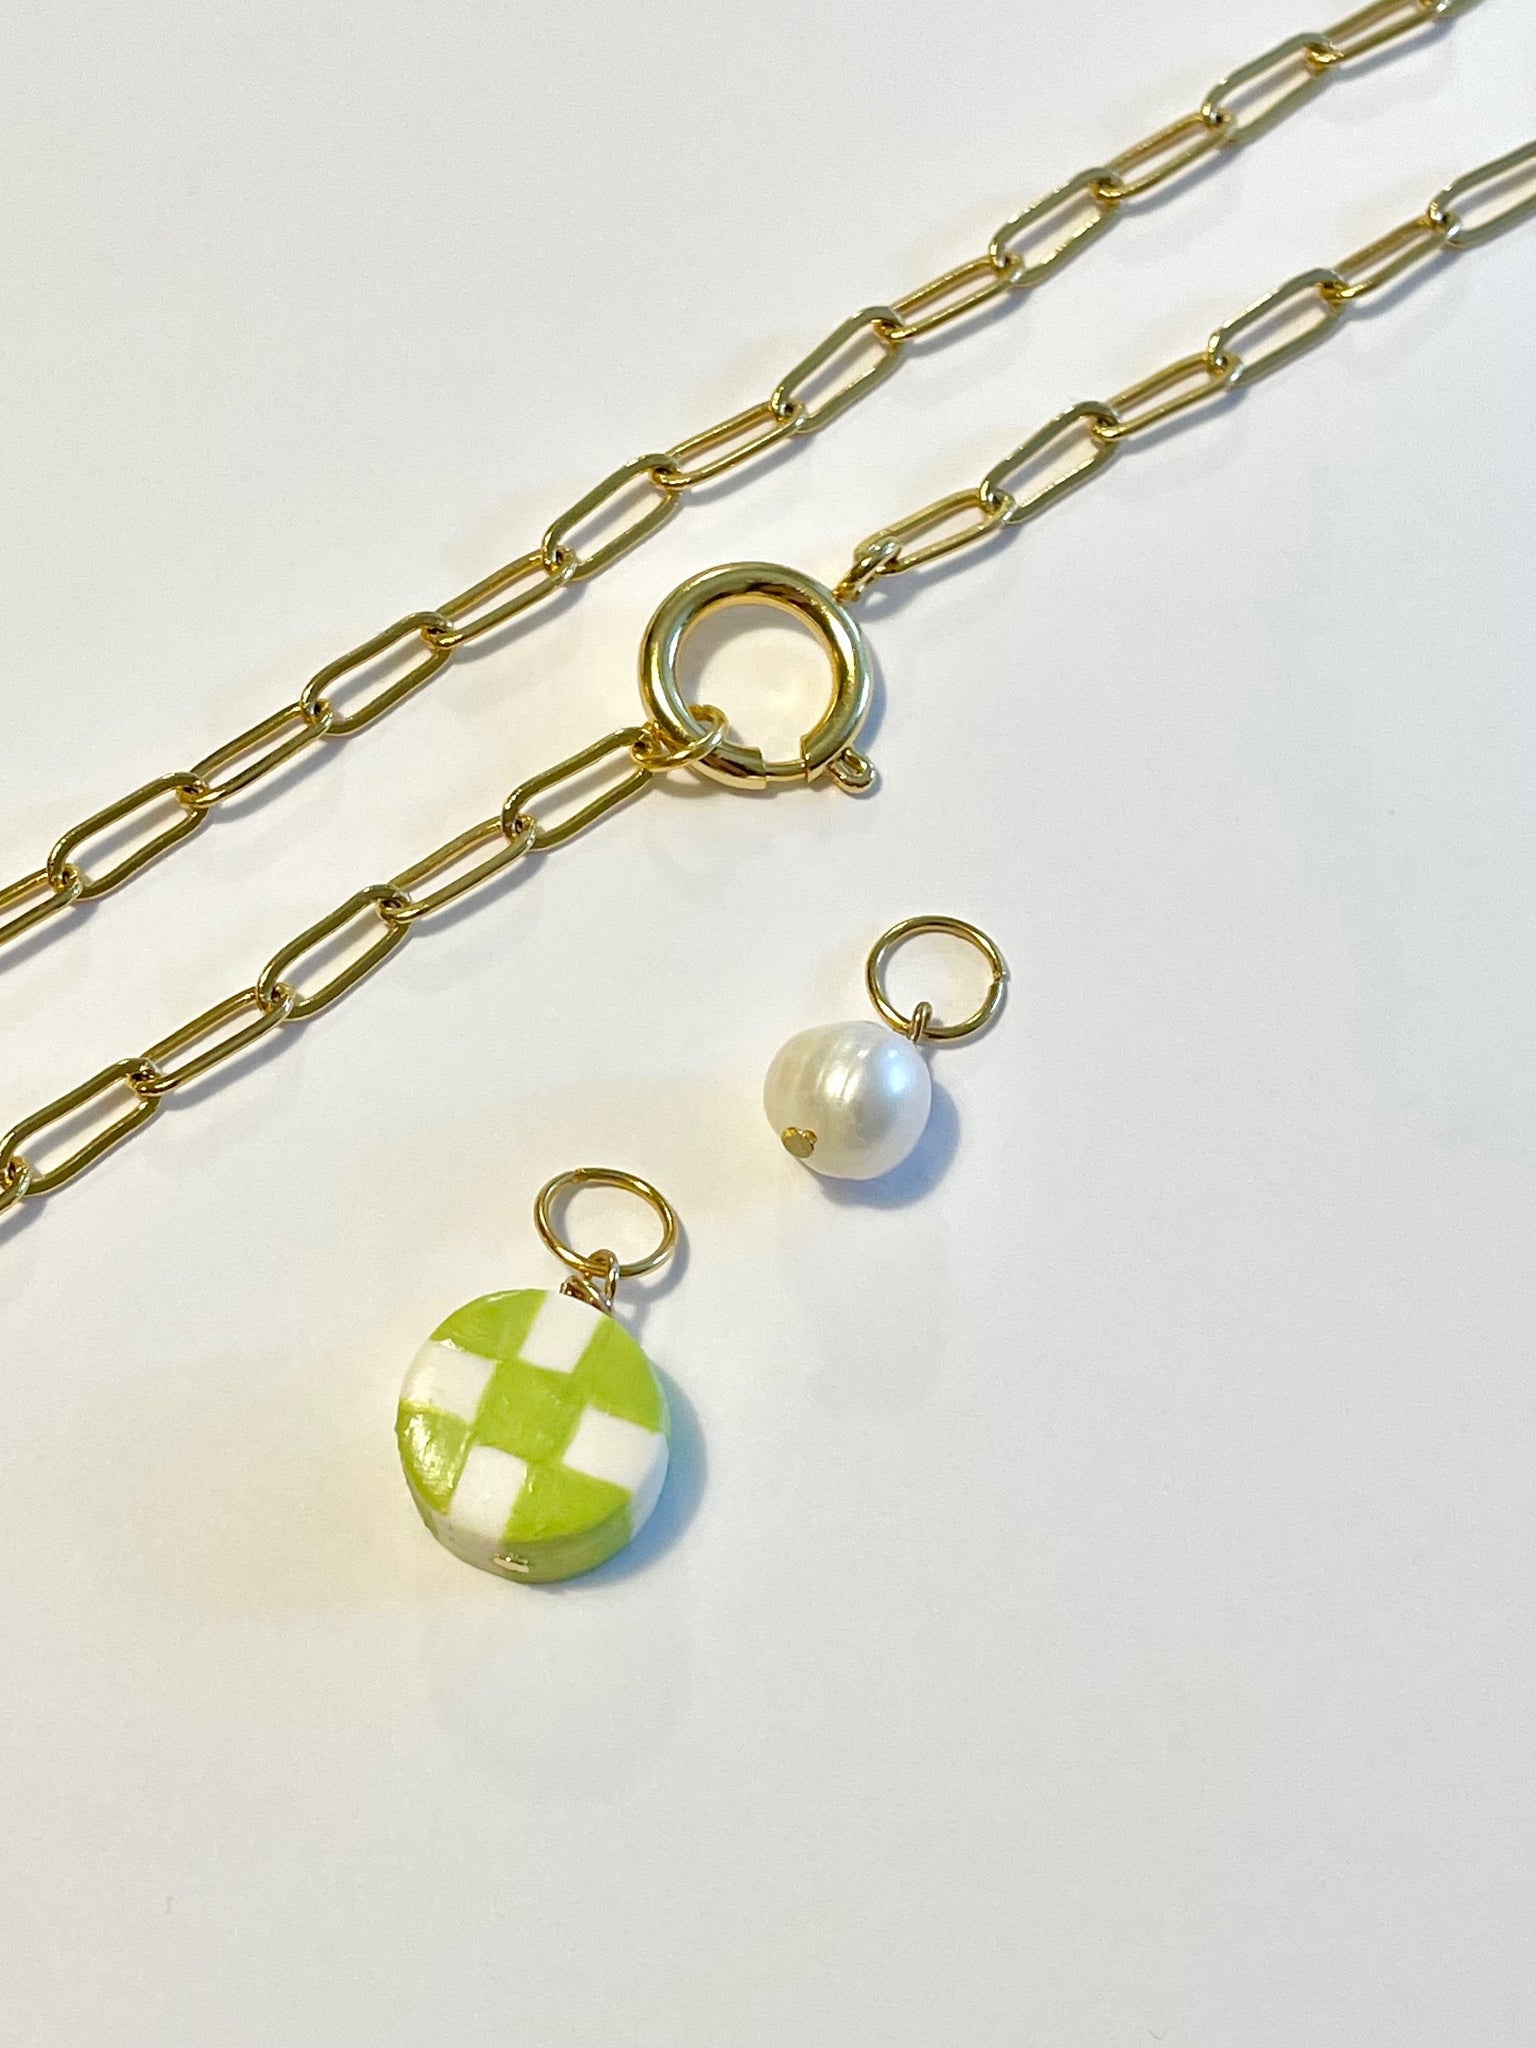 Checker Bored Necklace - Chartreuse